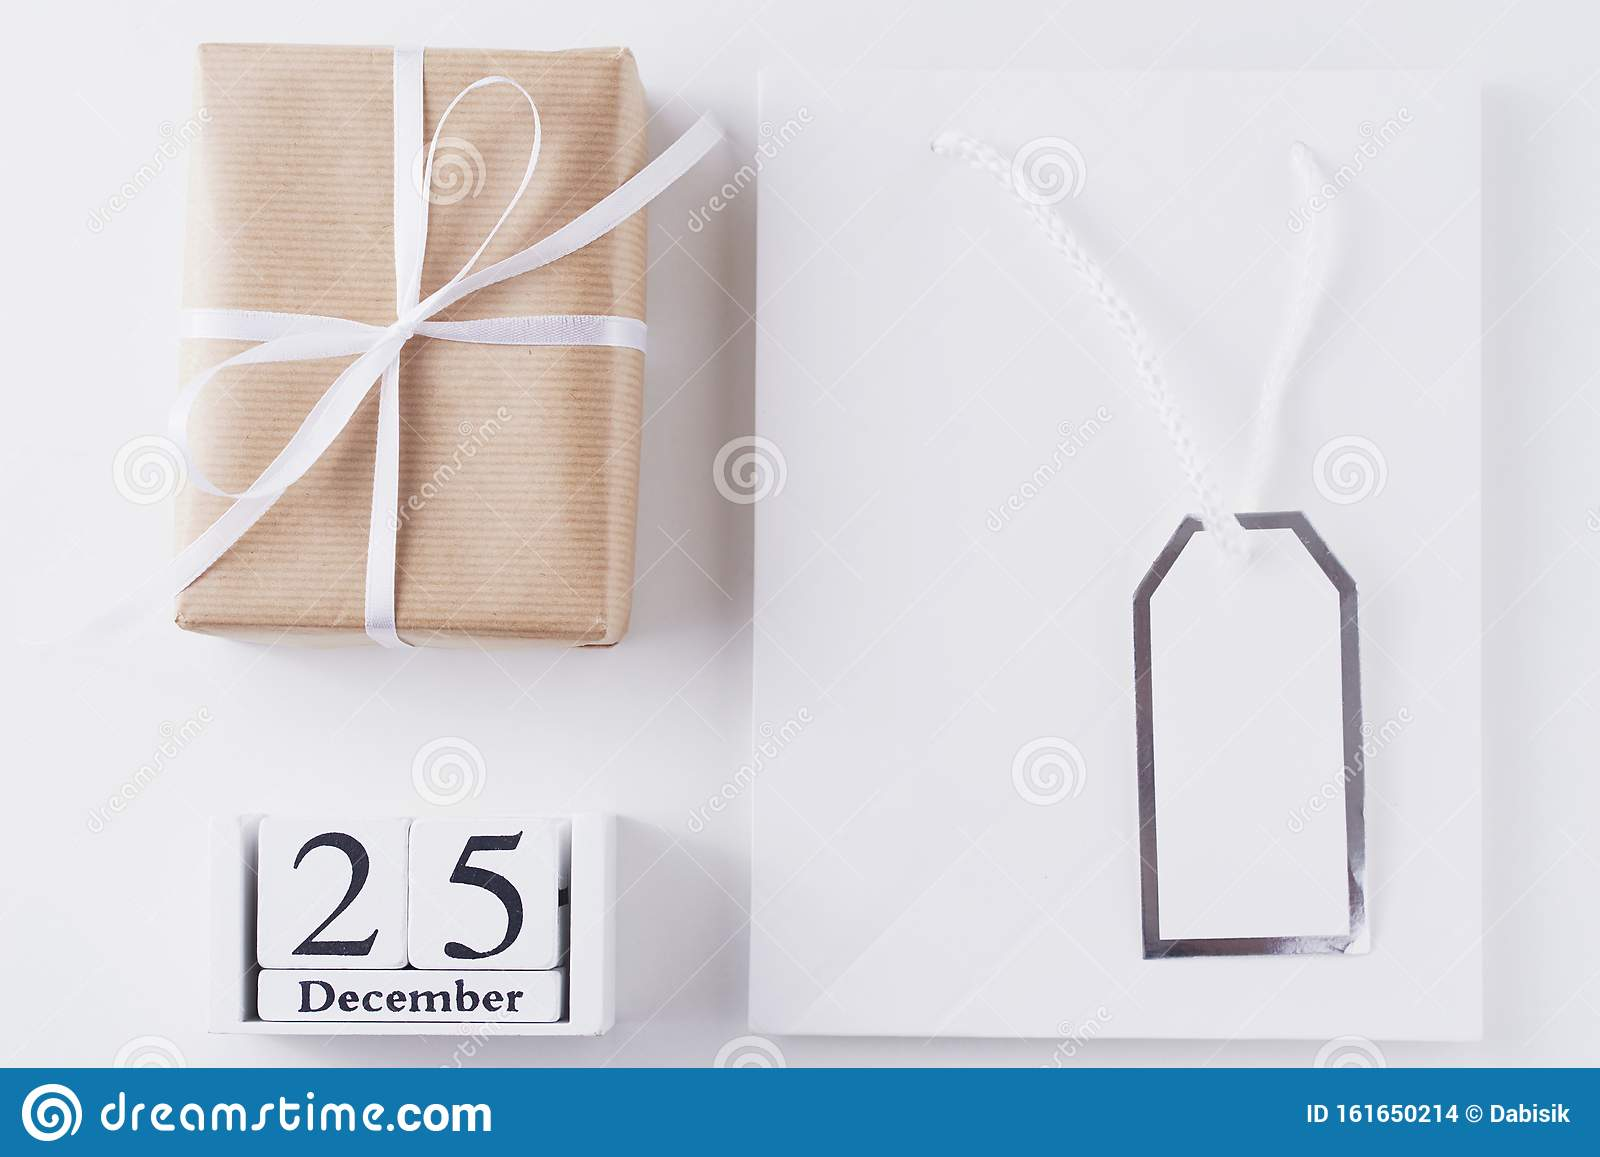 Christmas Presents For Family Or Friends Concept Stock Photo